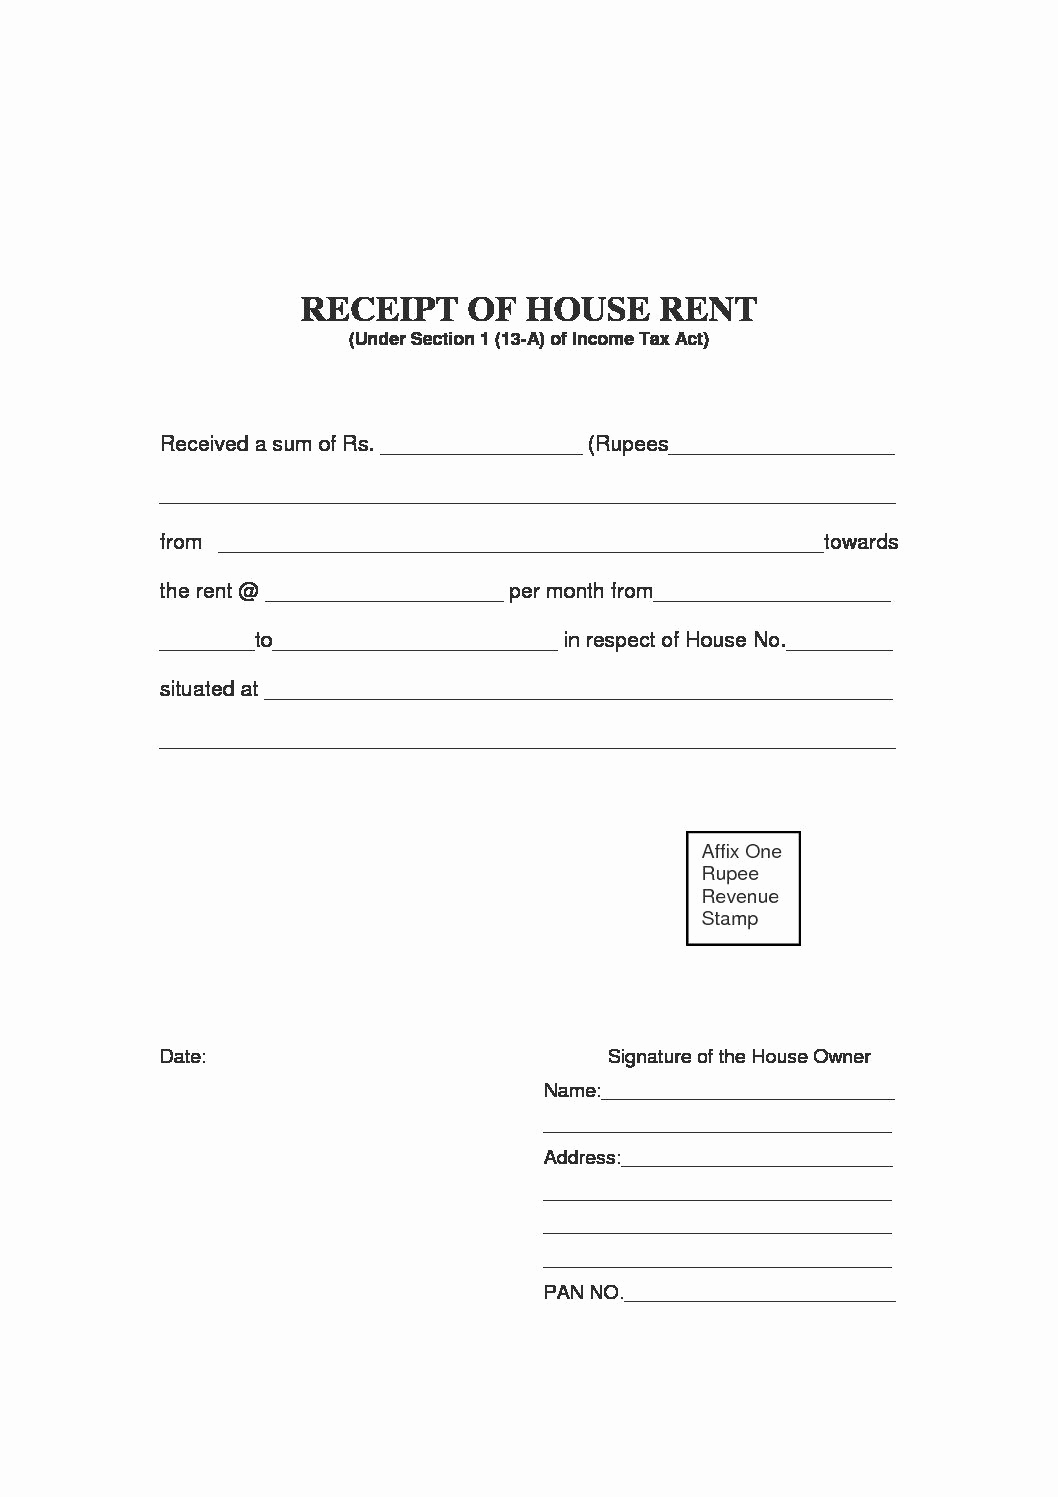 Rent Invoice Template Pdf Unique Free Rent Receipt Template and What Information to